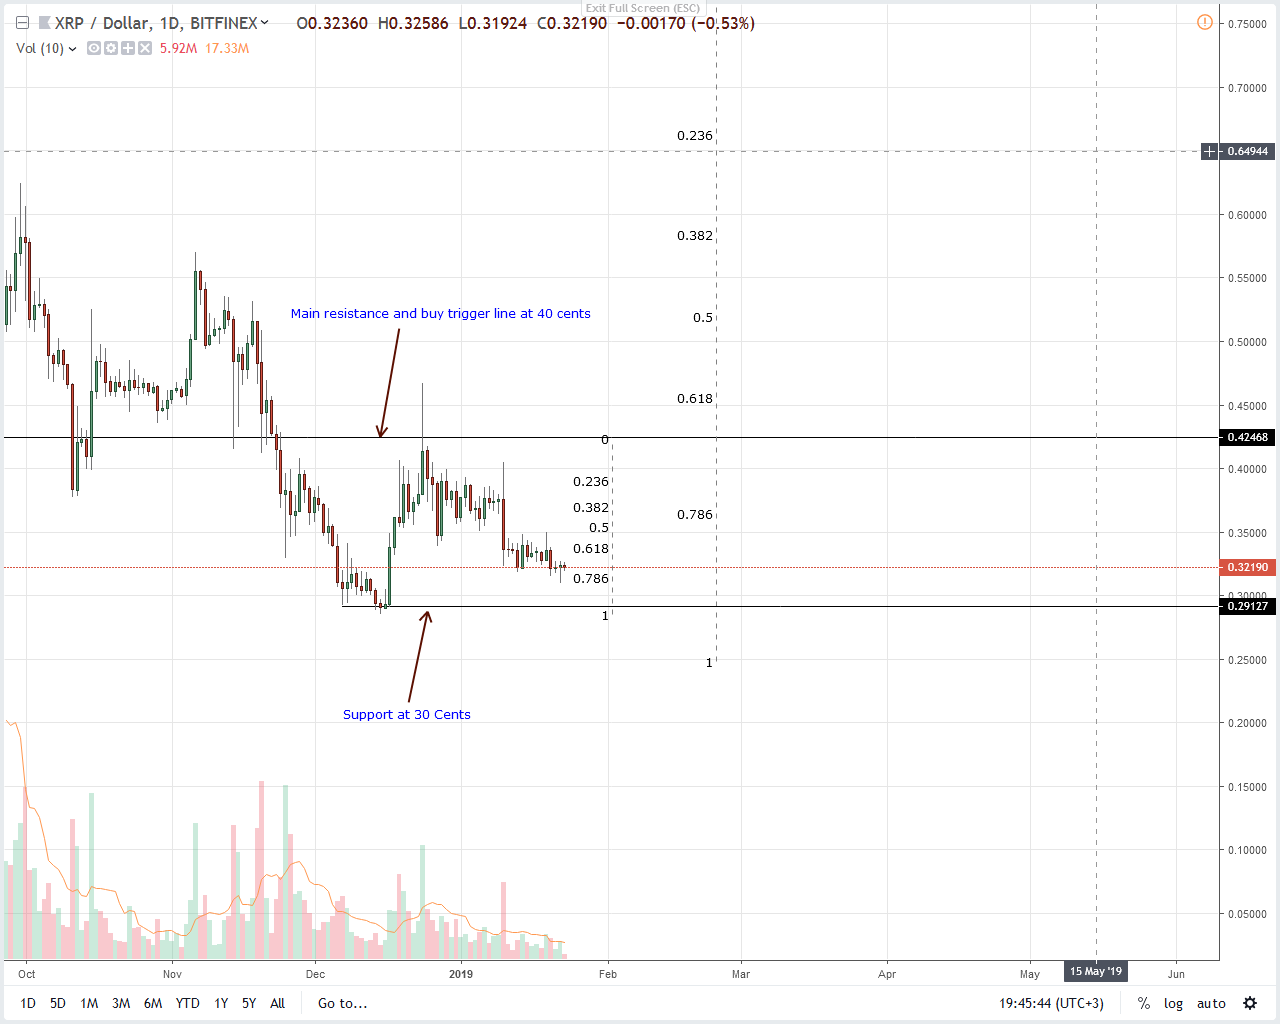 Ripple Price Analysis: XRP Steady, Inroads to Mainland China